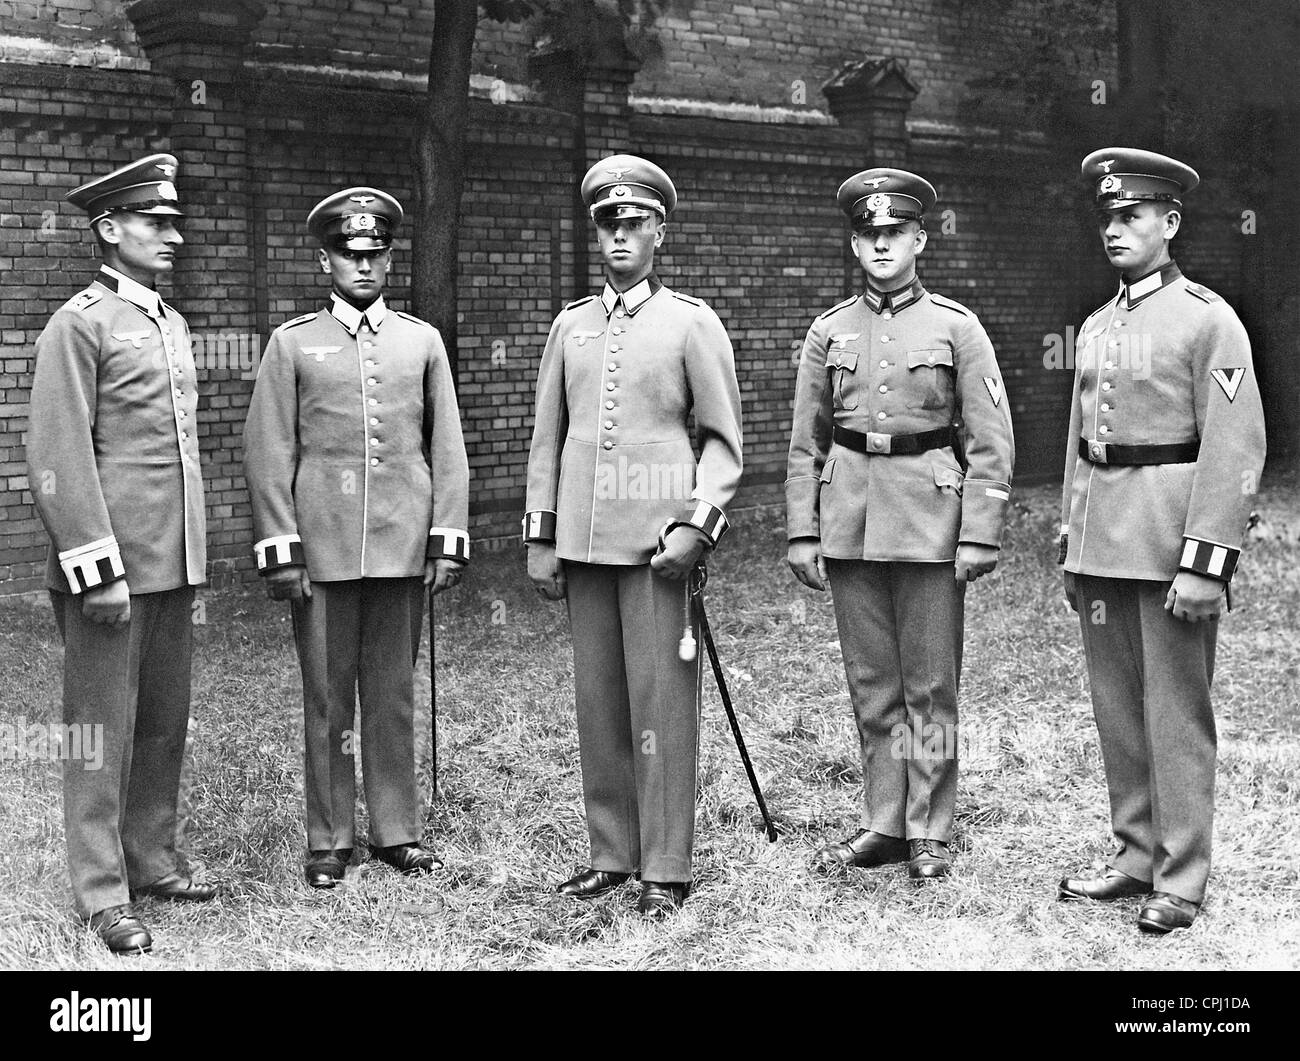 Presentation of the new uniforms of the Wehrmacht, 1935 - Stock Image